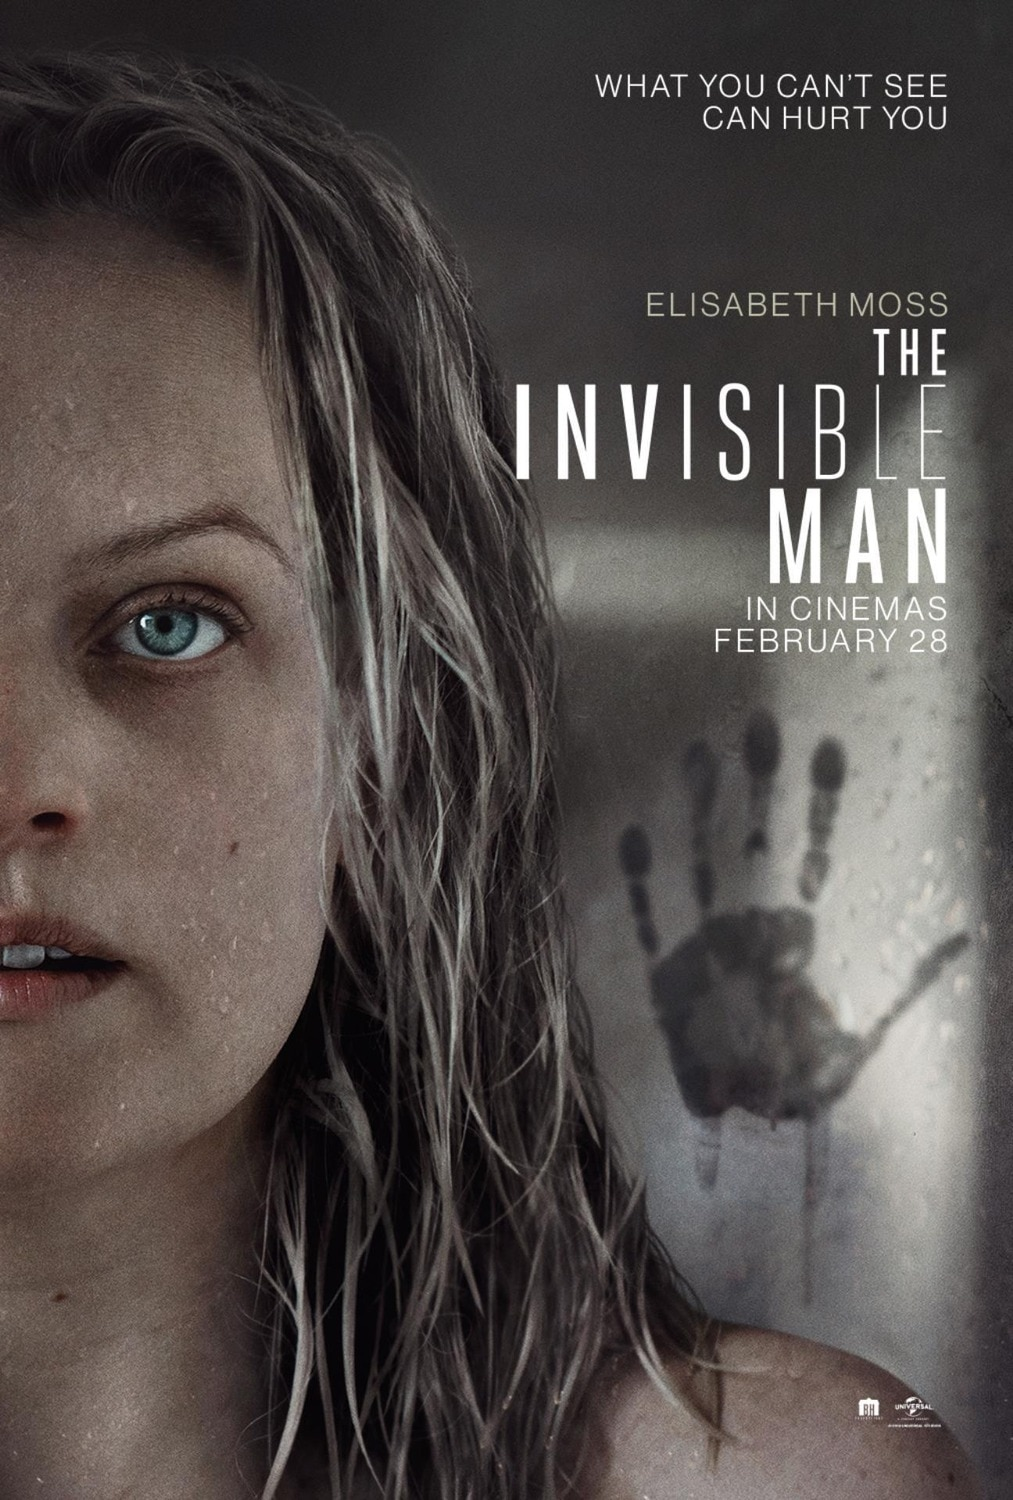 THE INVISIBLE MAN Poster 2 - Blumhouse's New THE INVISIBLE MAN Poster Takes a Shower